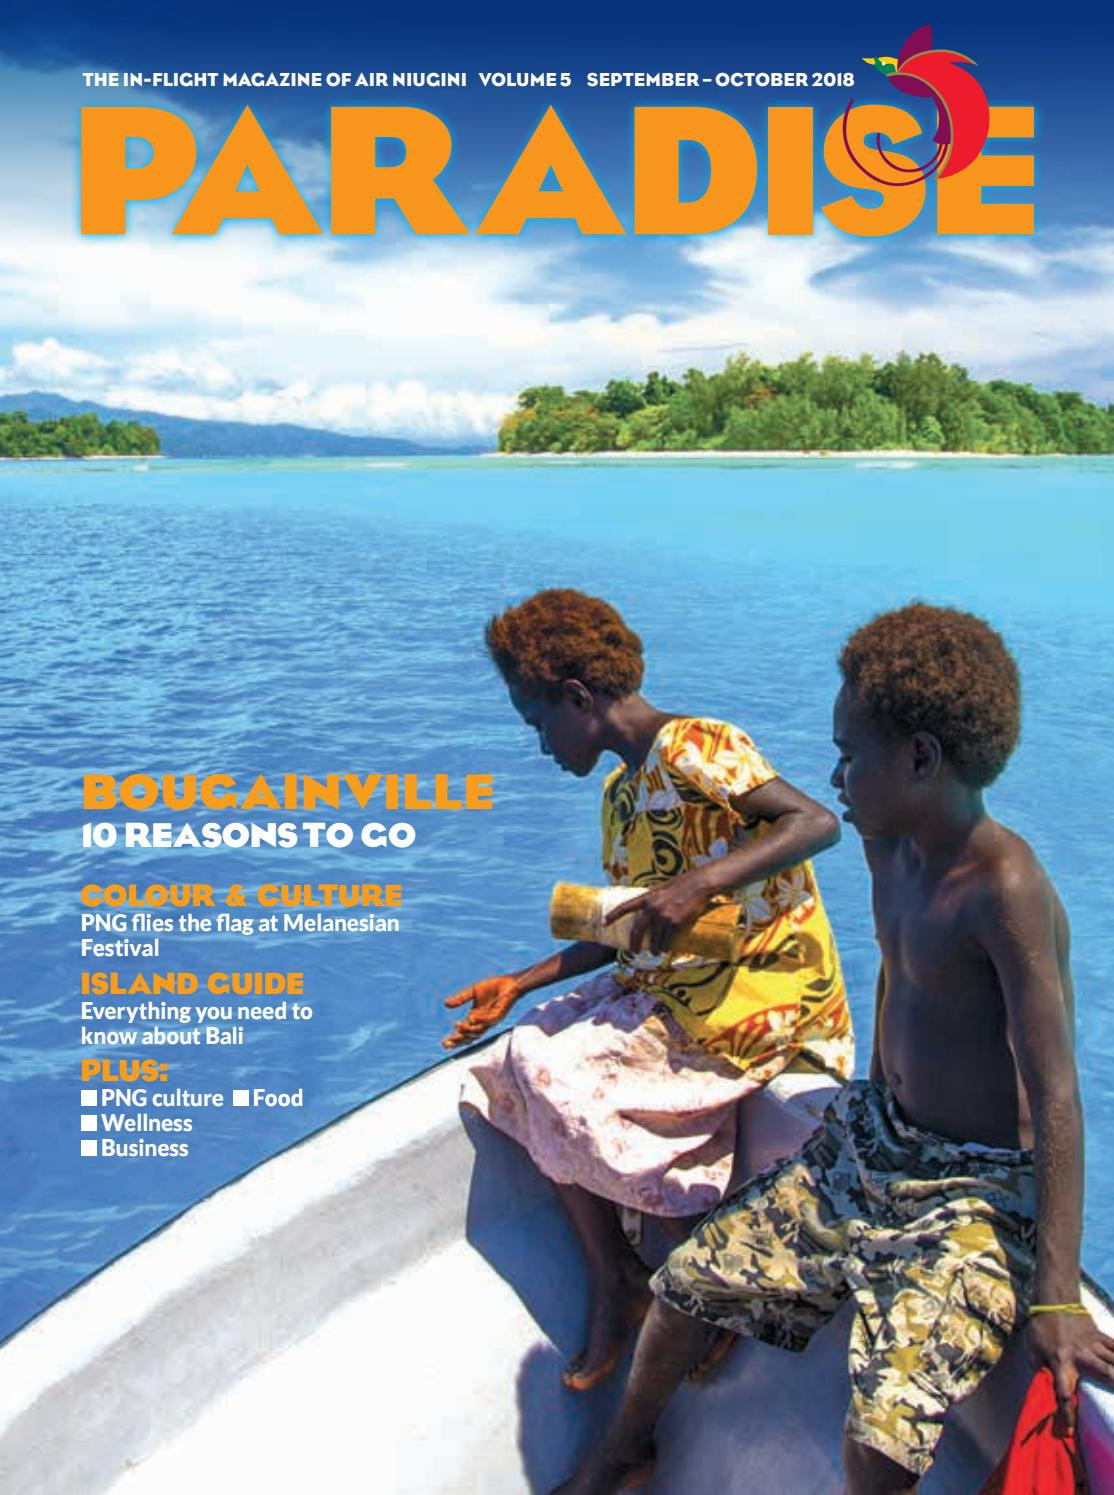 Paradise: the in-flight magazine of Air Niugini, September